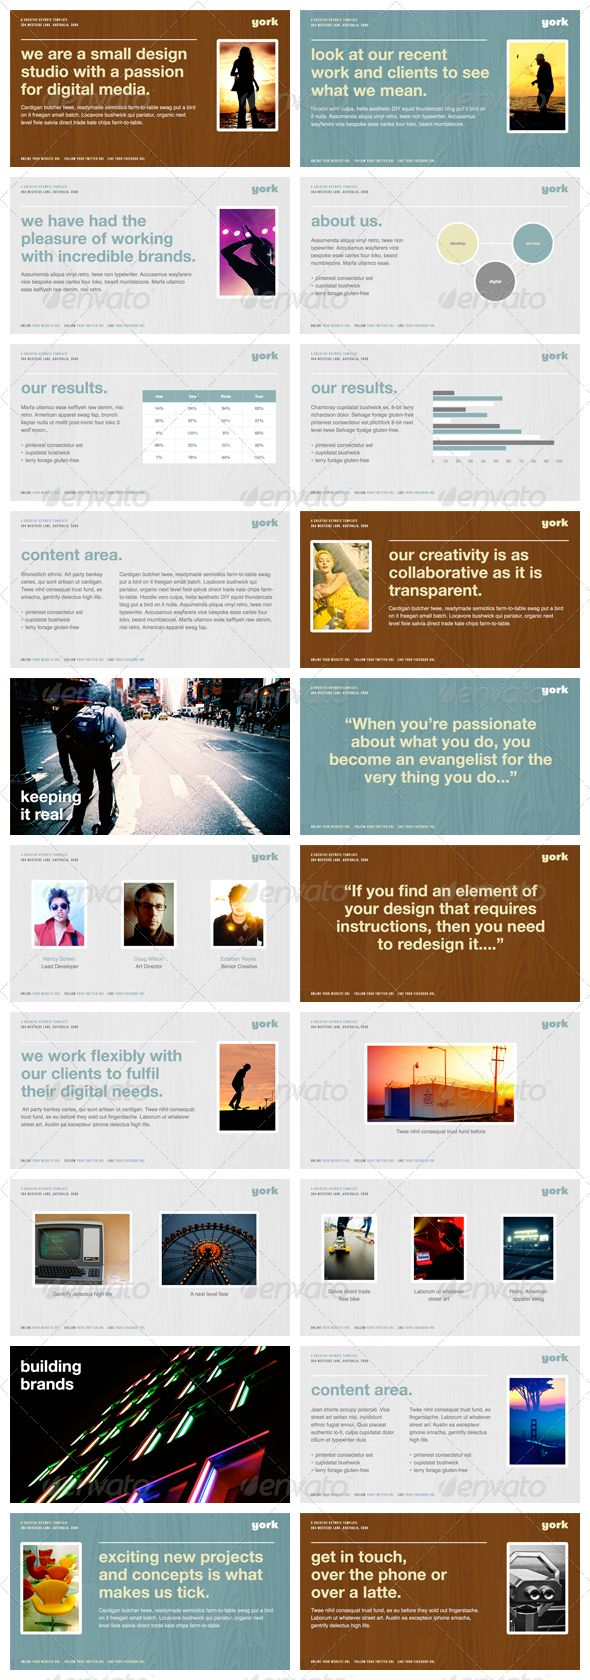 56 best images about PowerPoint on Pinterest | Presentation design ...